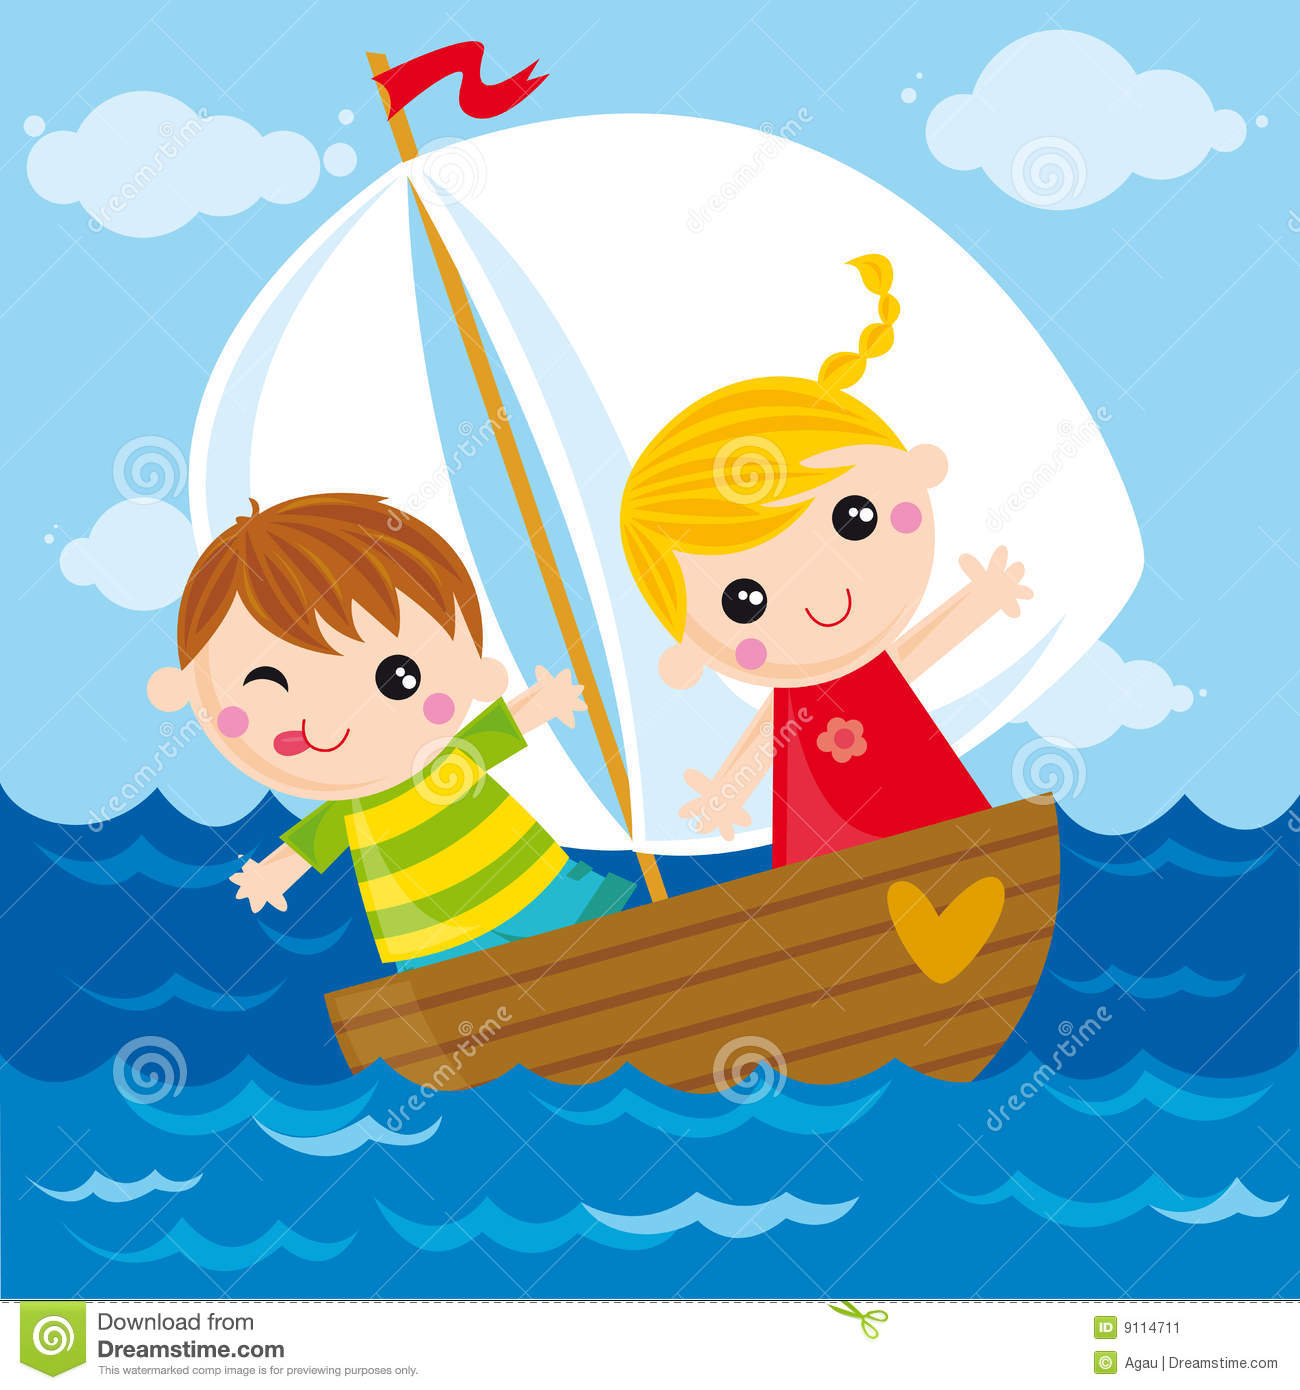 Illustration of two kids sailing in the sea.